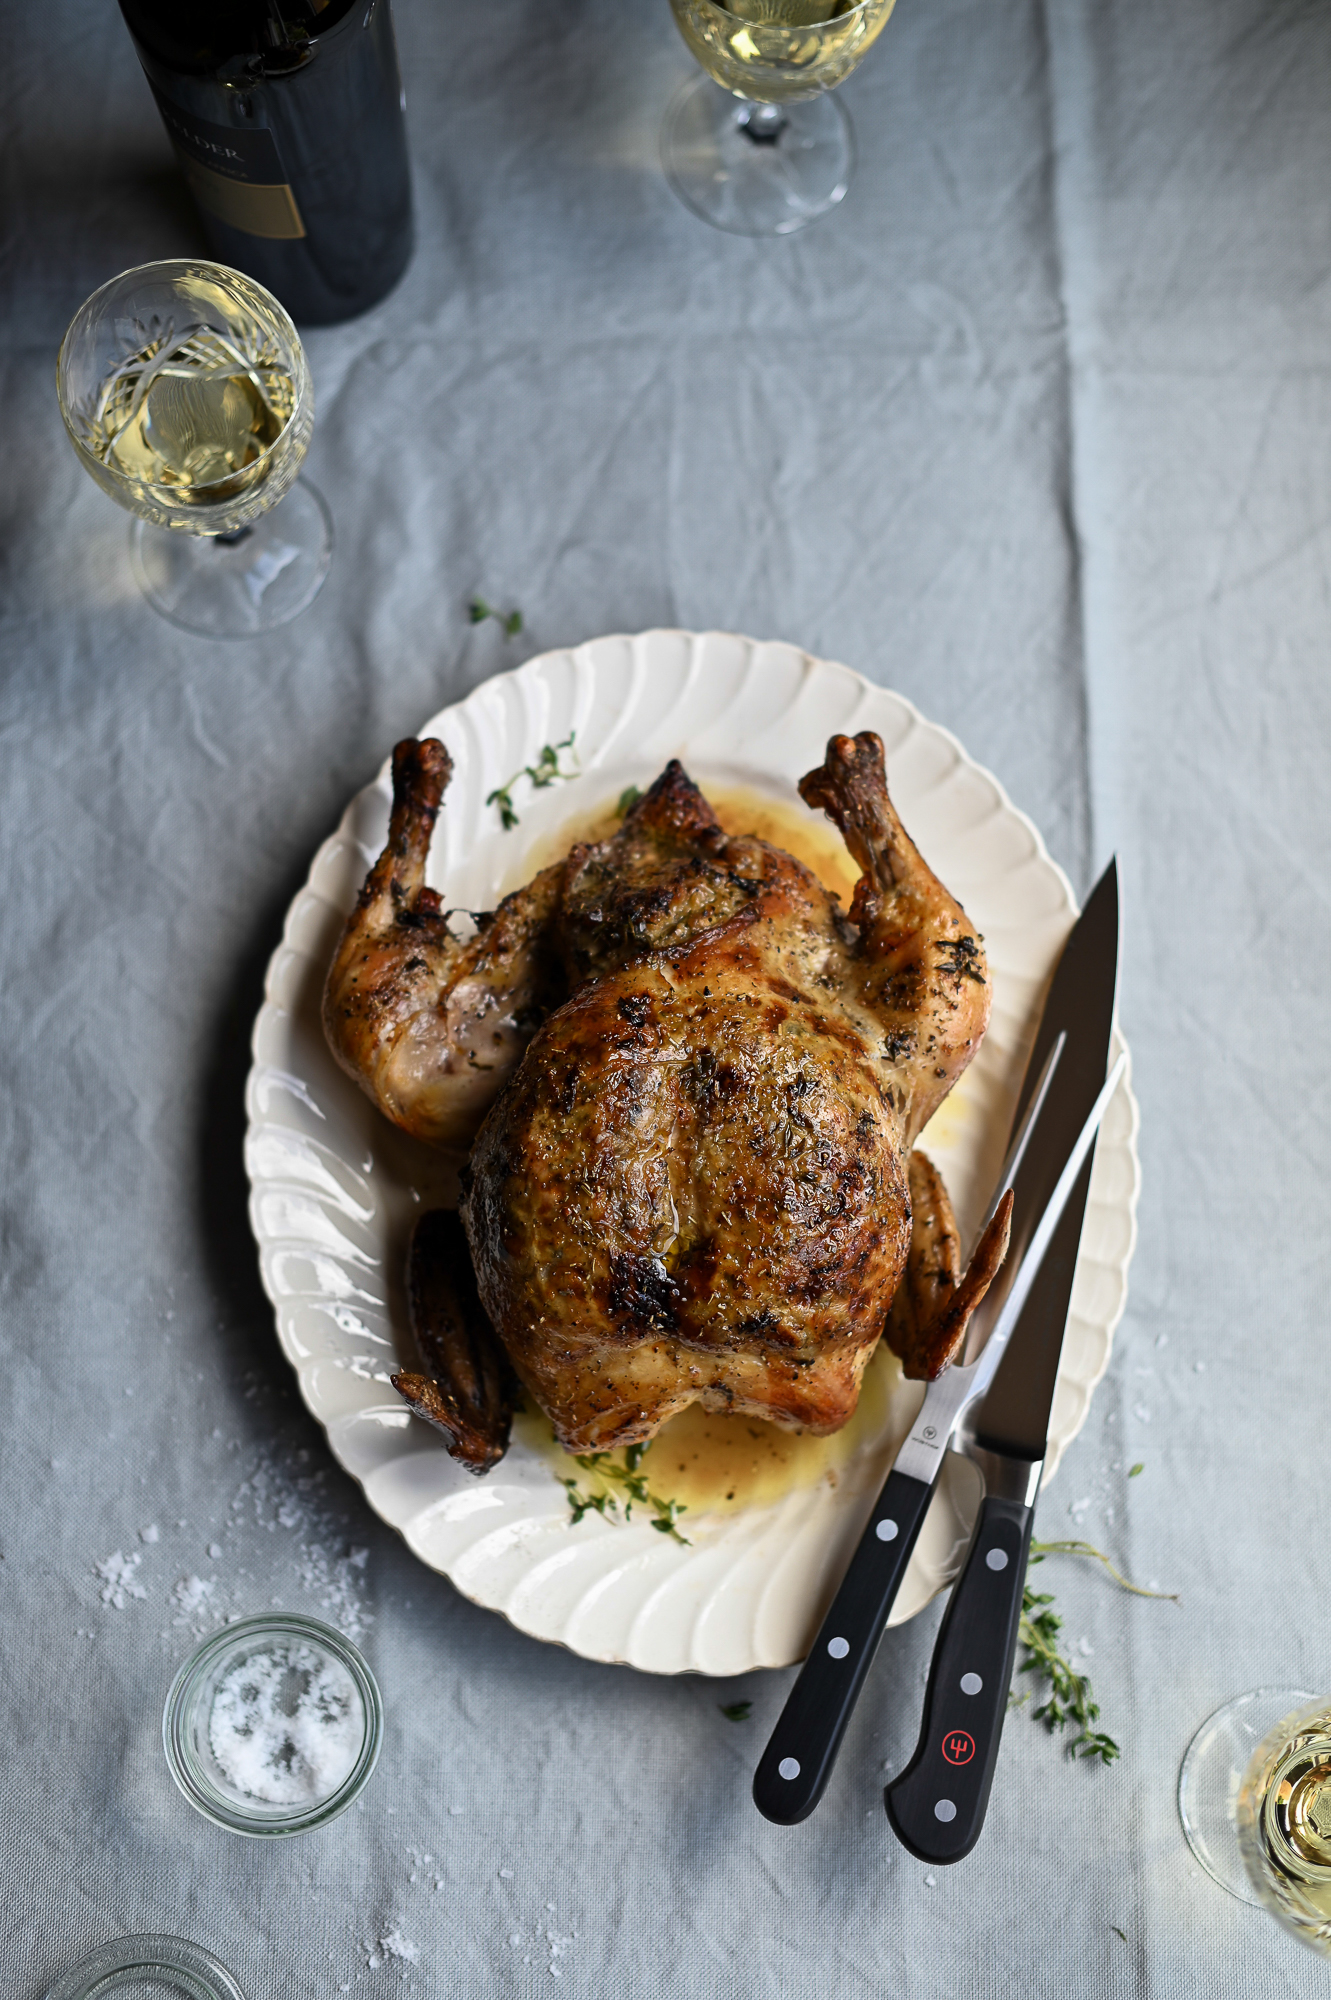 A REALLY GOOD RECIPE FOR ROAST CHICKEN